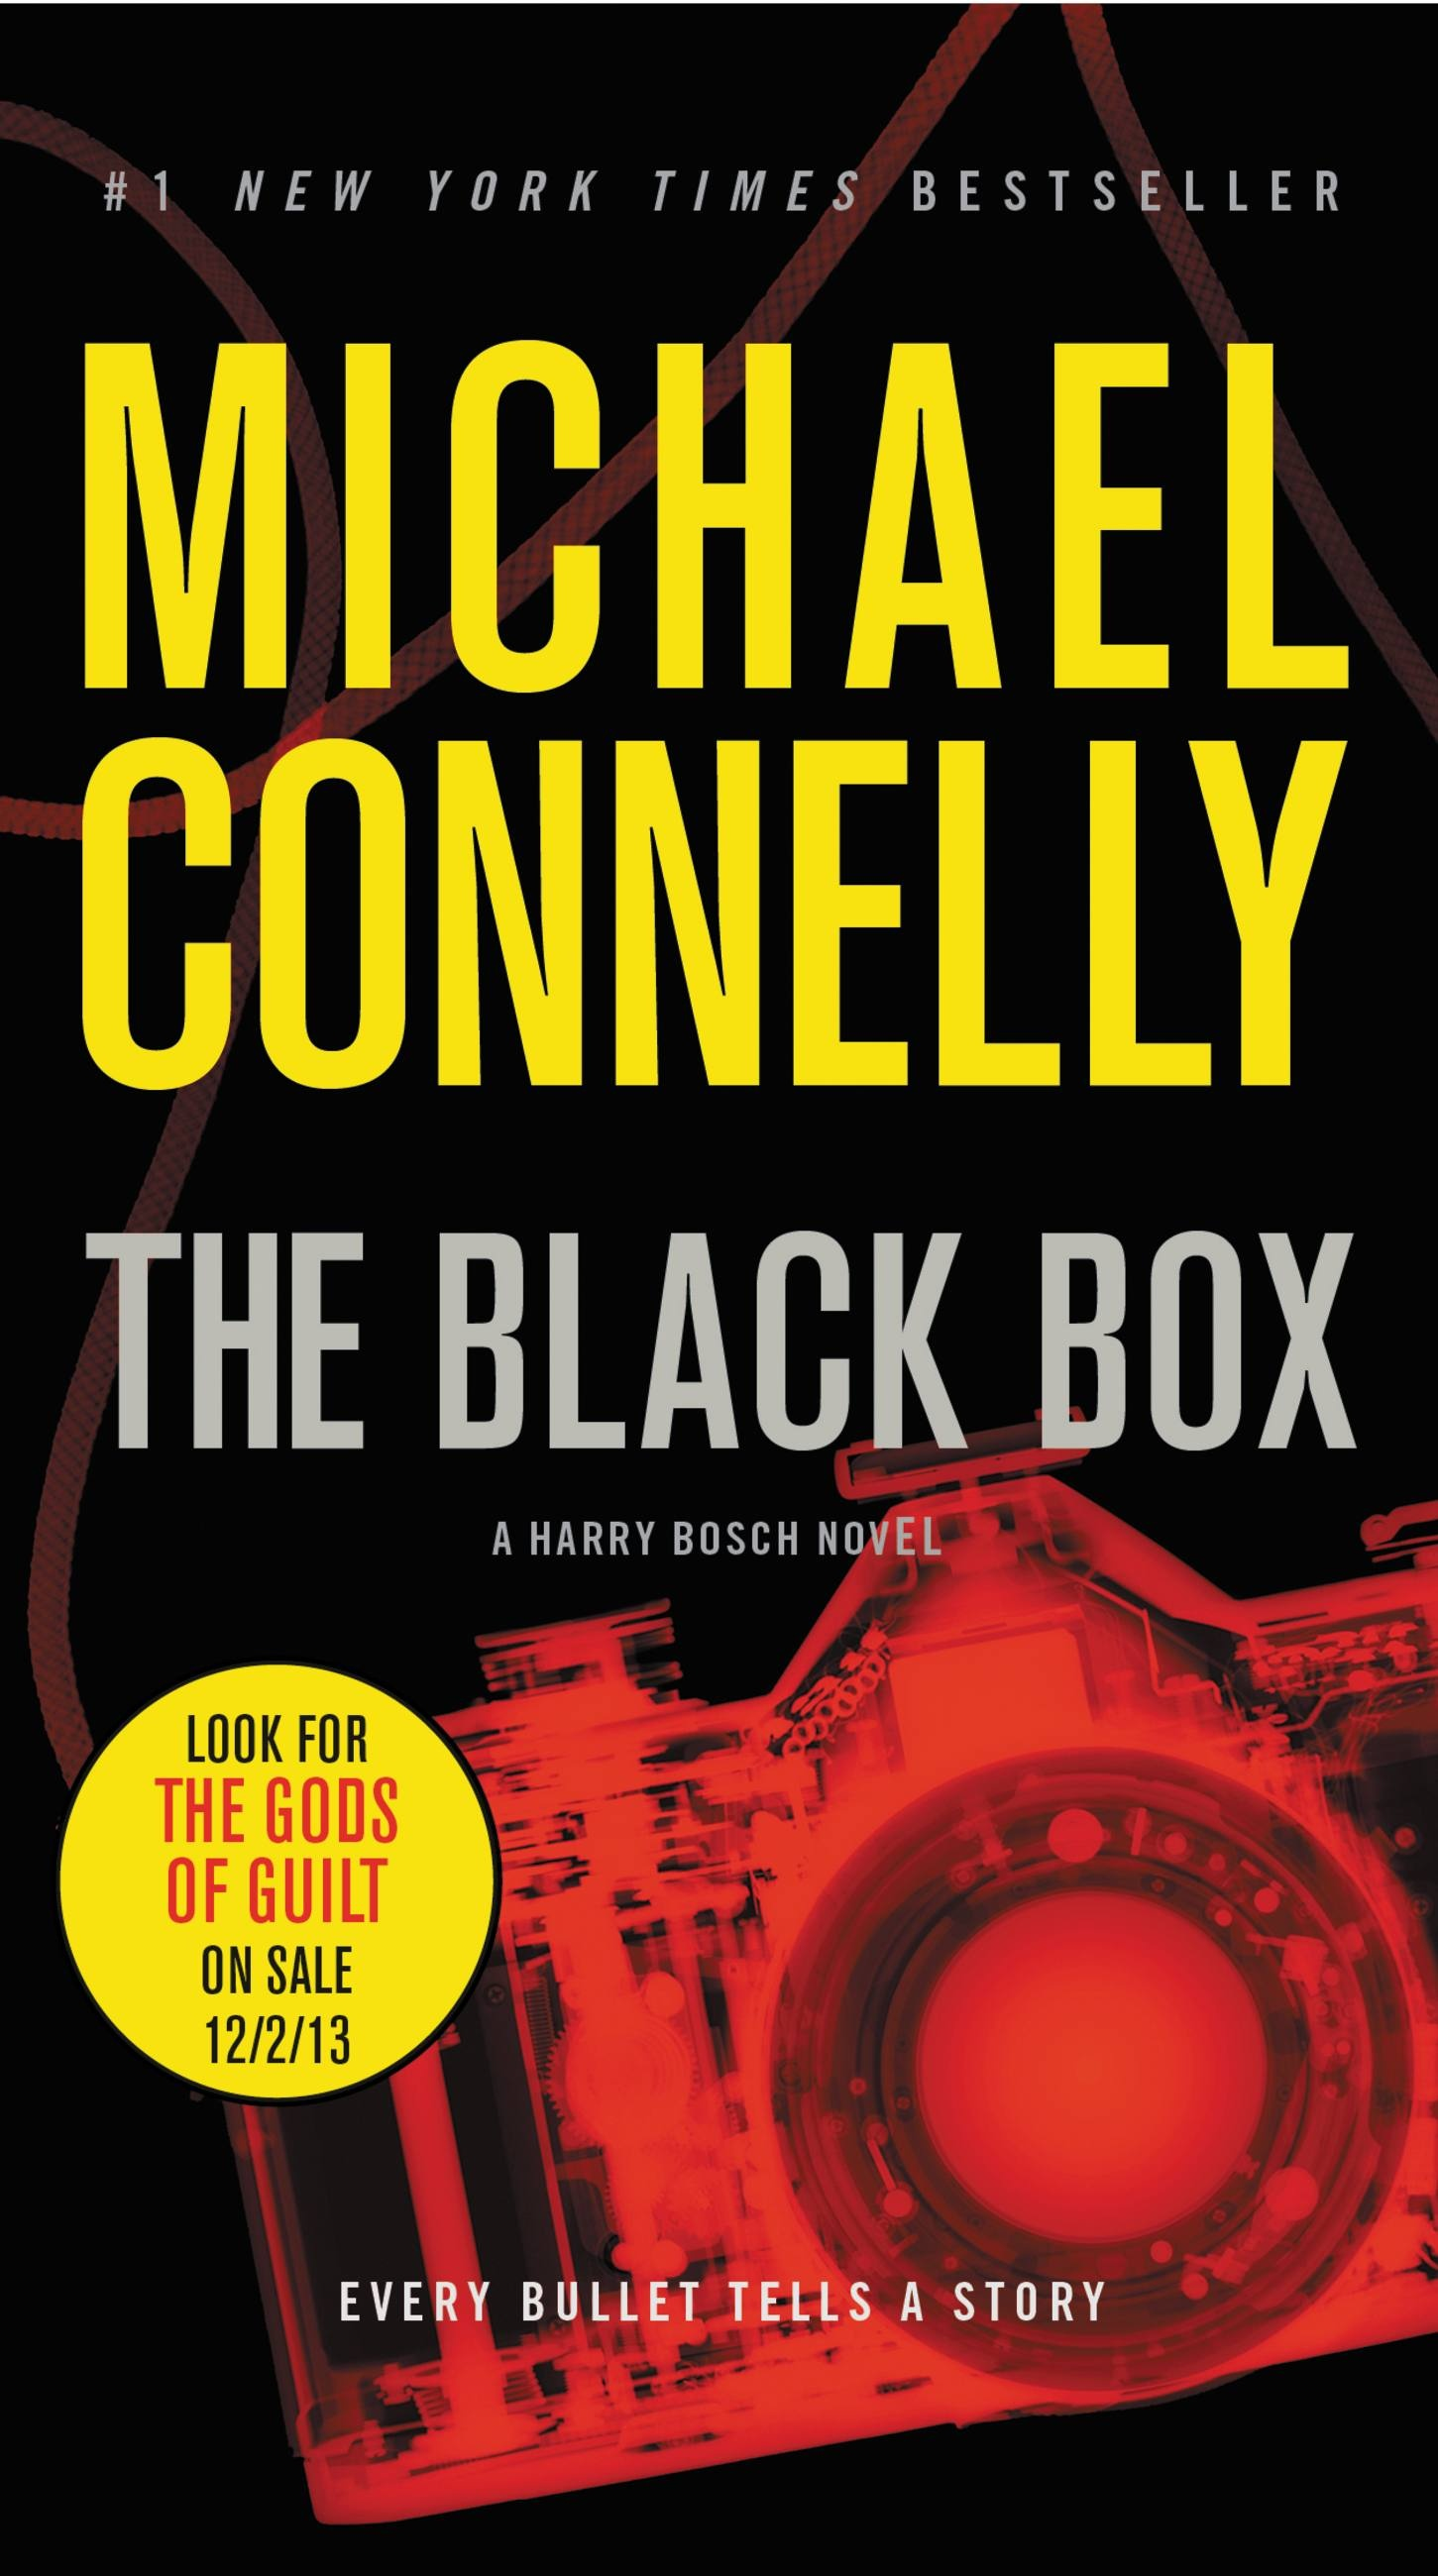 The Black Box by Michael Connelly | Hachette Book Group